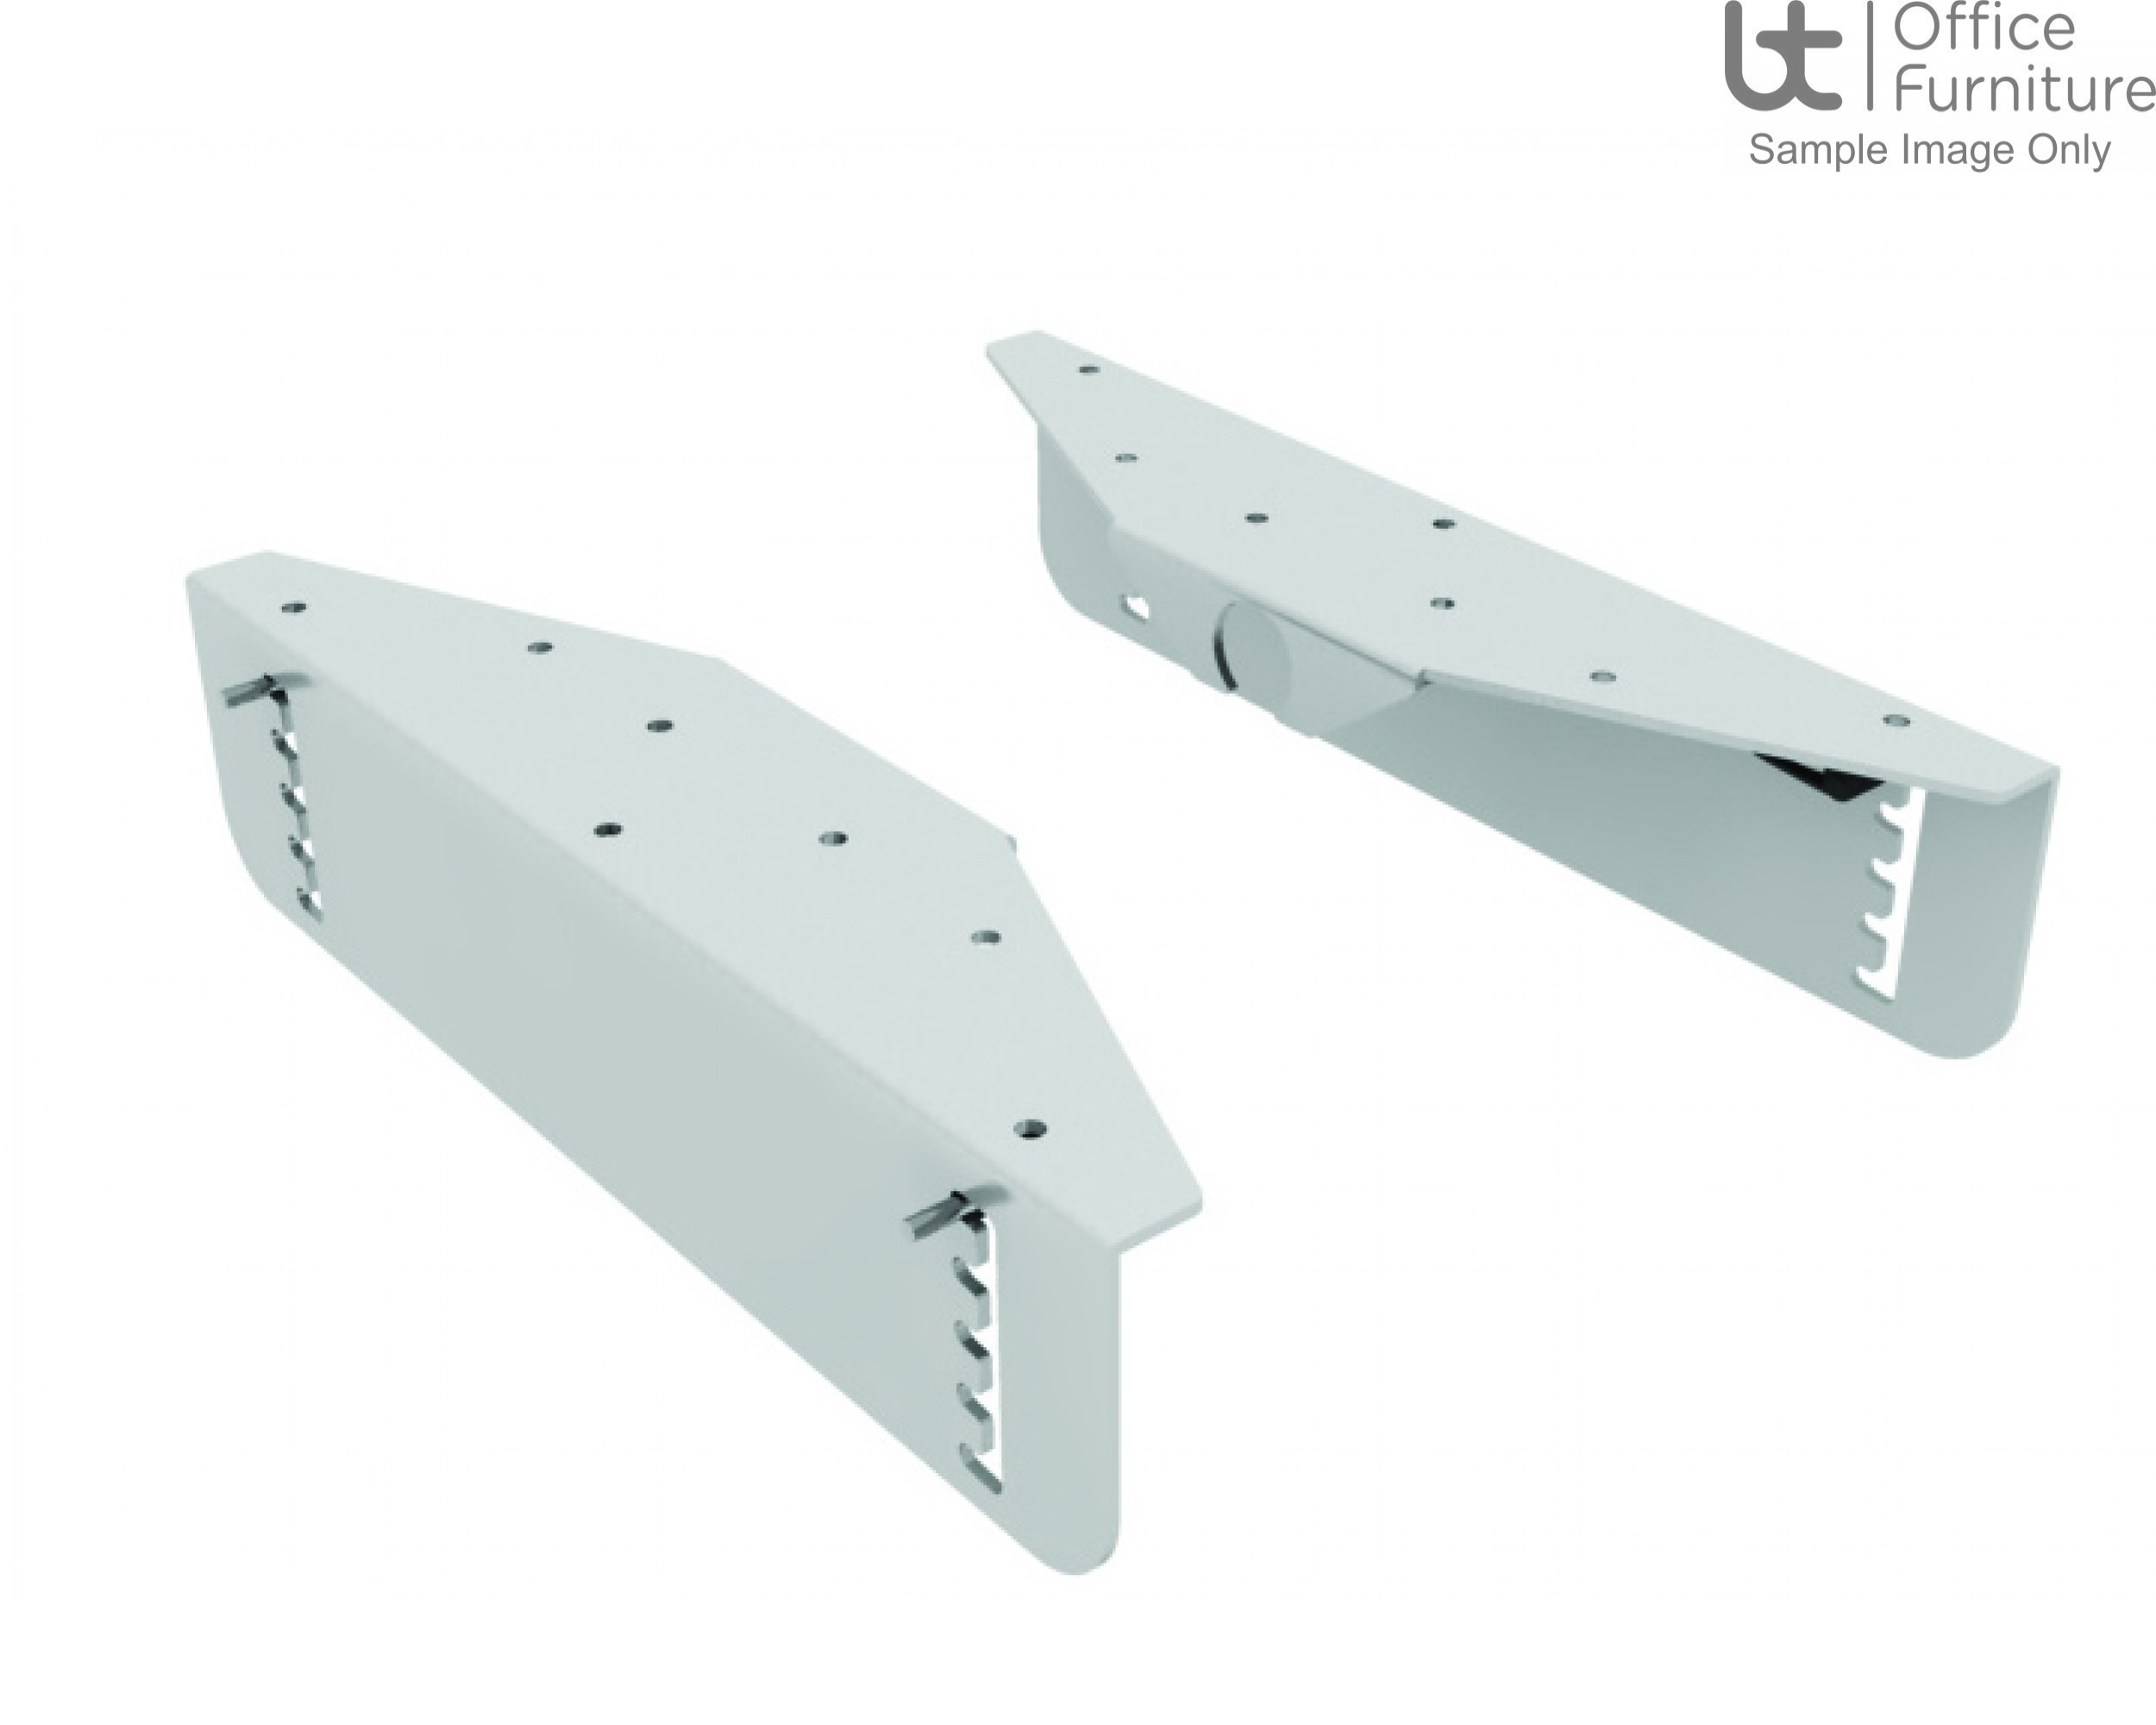 Vega Height Adjustable Kit - From 720mm to 800mm